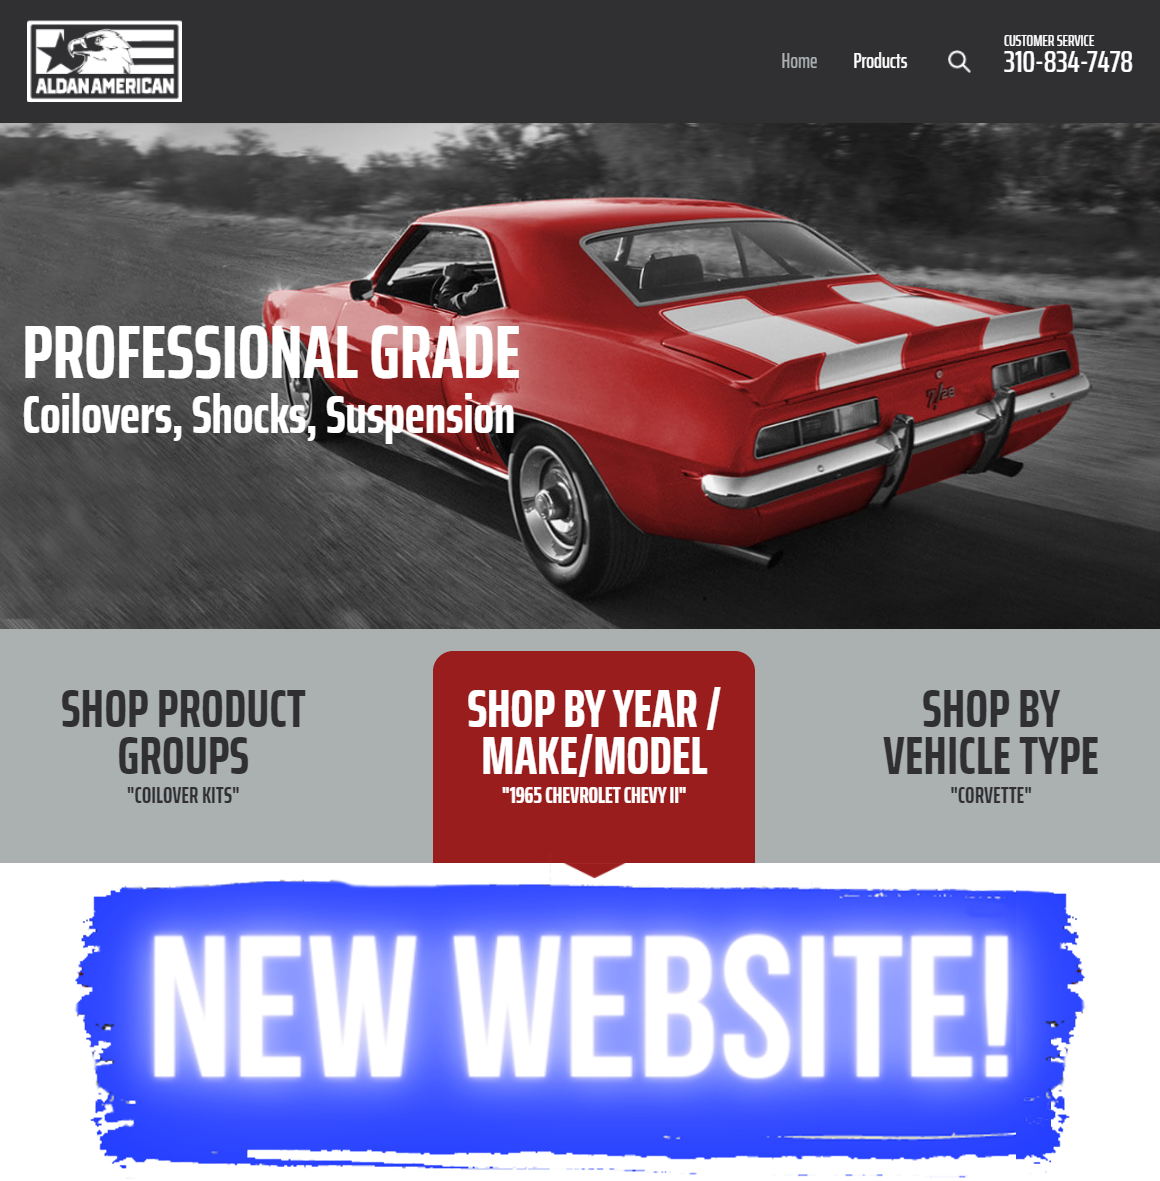 DRIVE ON OVER TO OVER TO OUR NEW WEBSITE ALDANAMERICAN.COM!